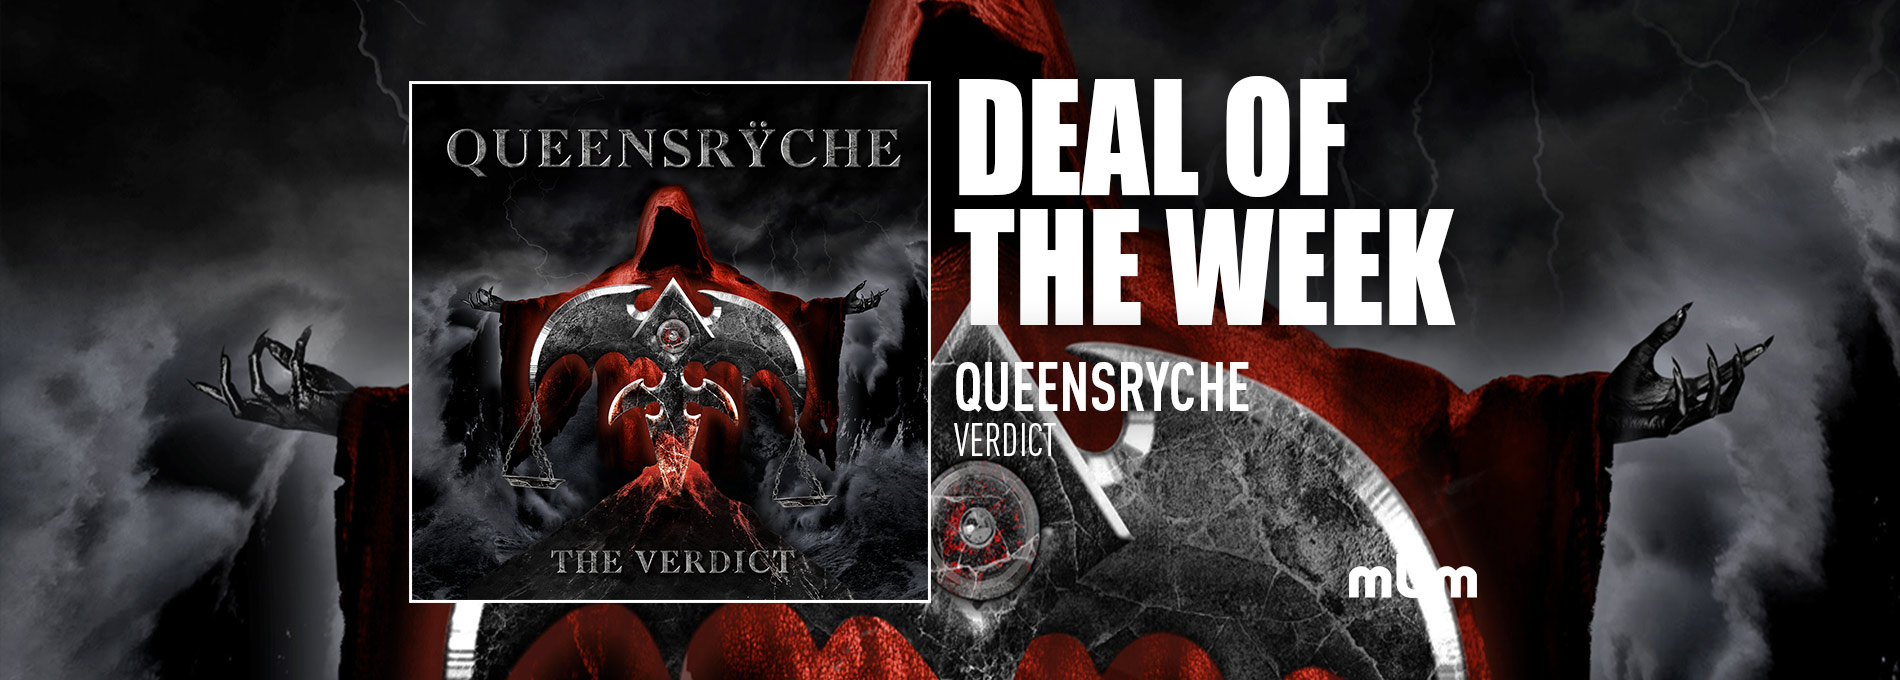 Deal Of The Week: QUEENSRYCHE - Verdict